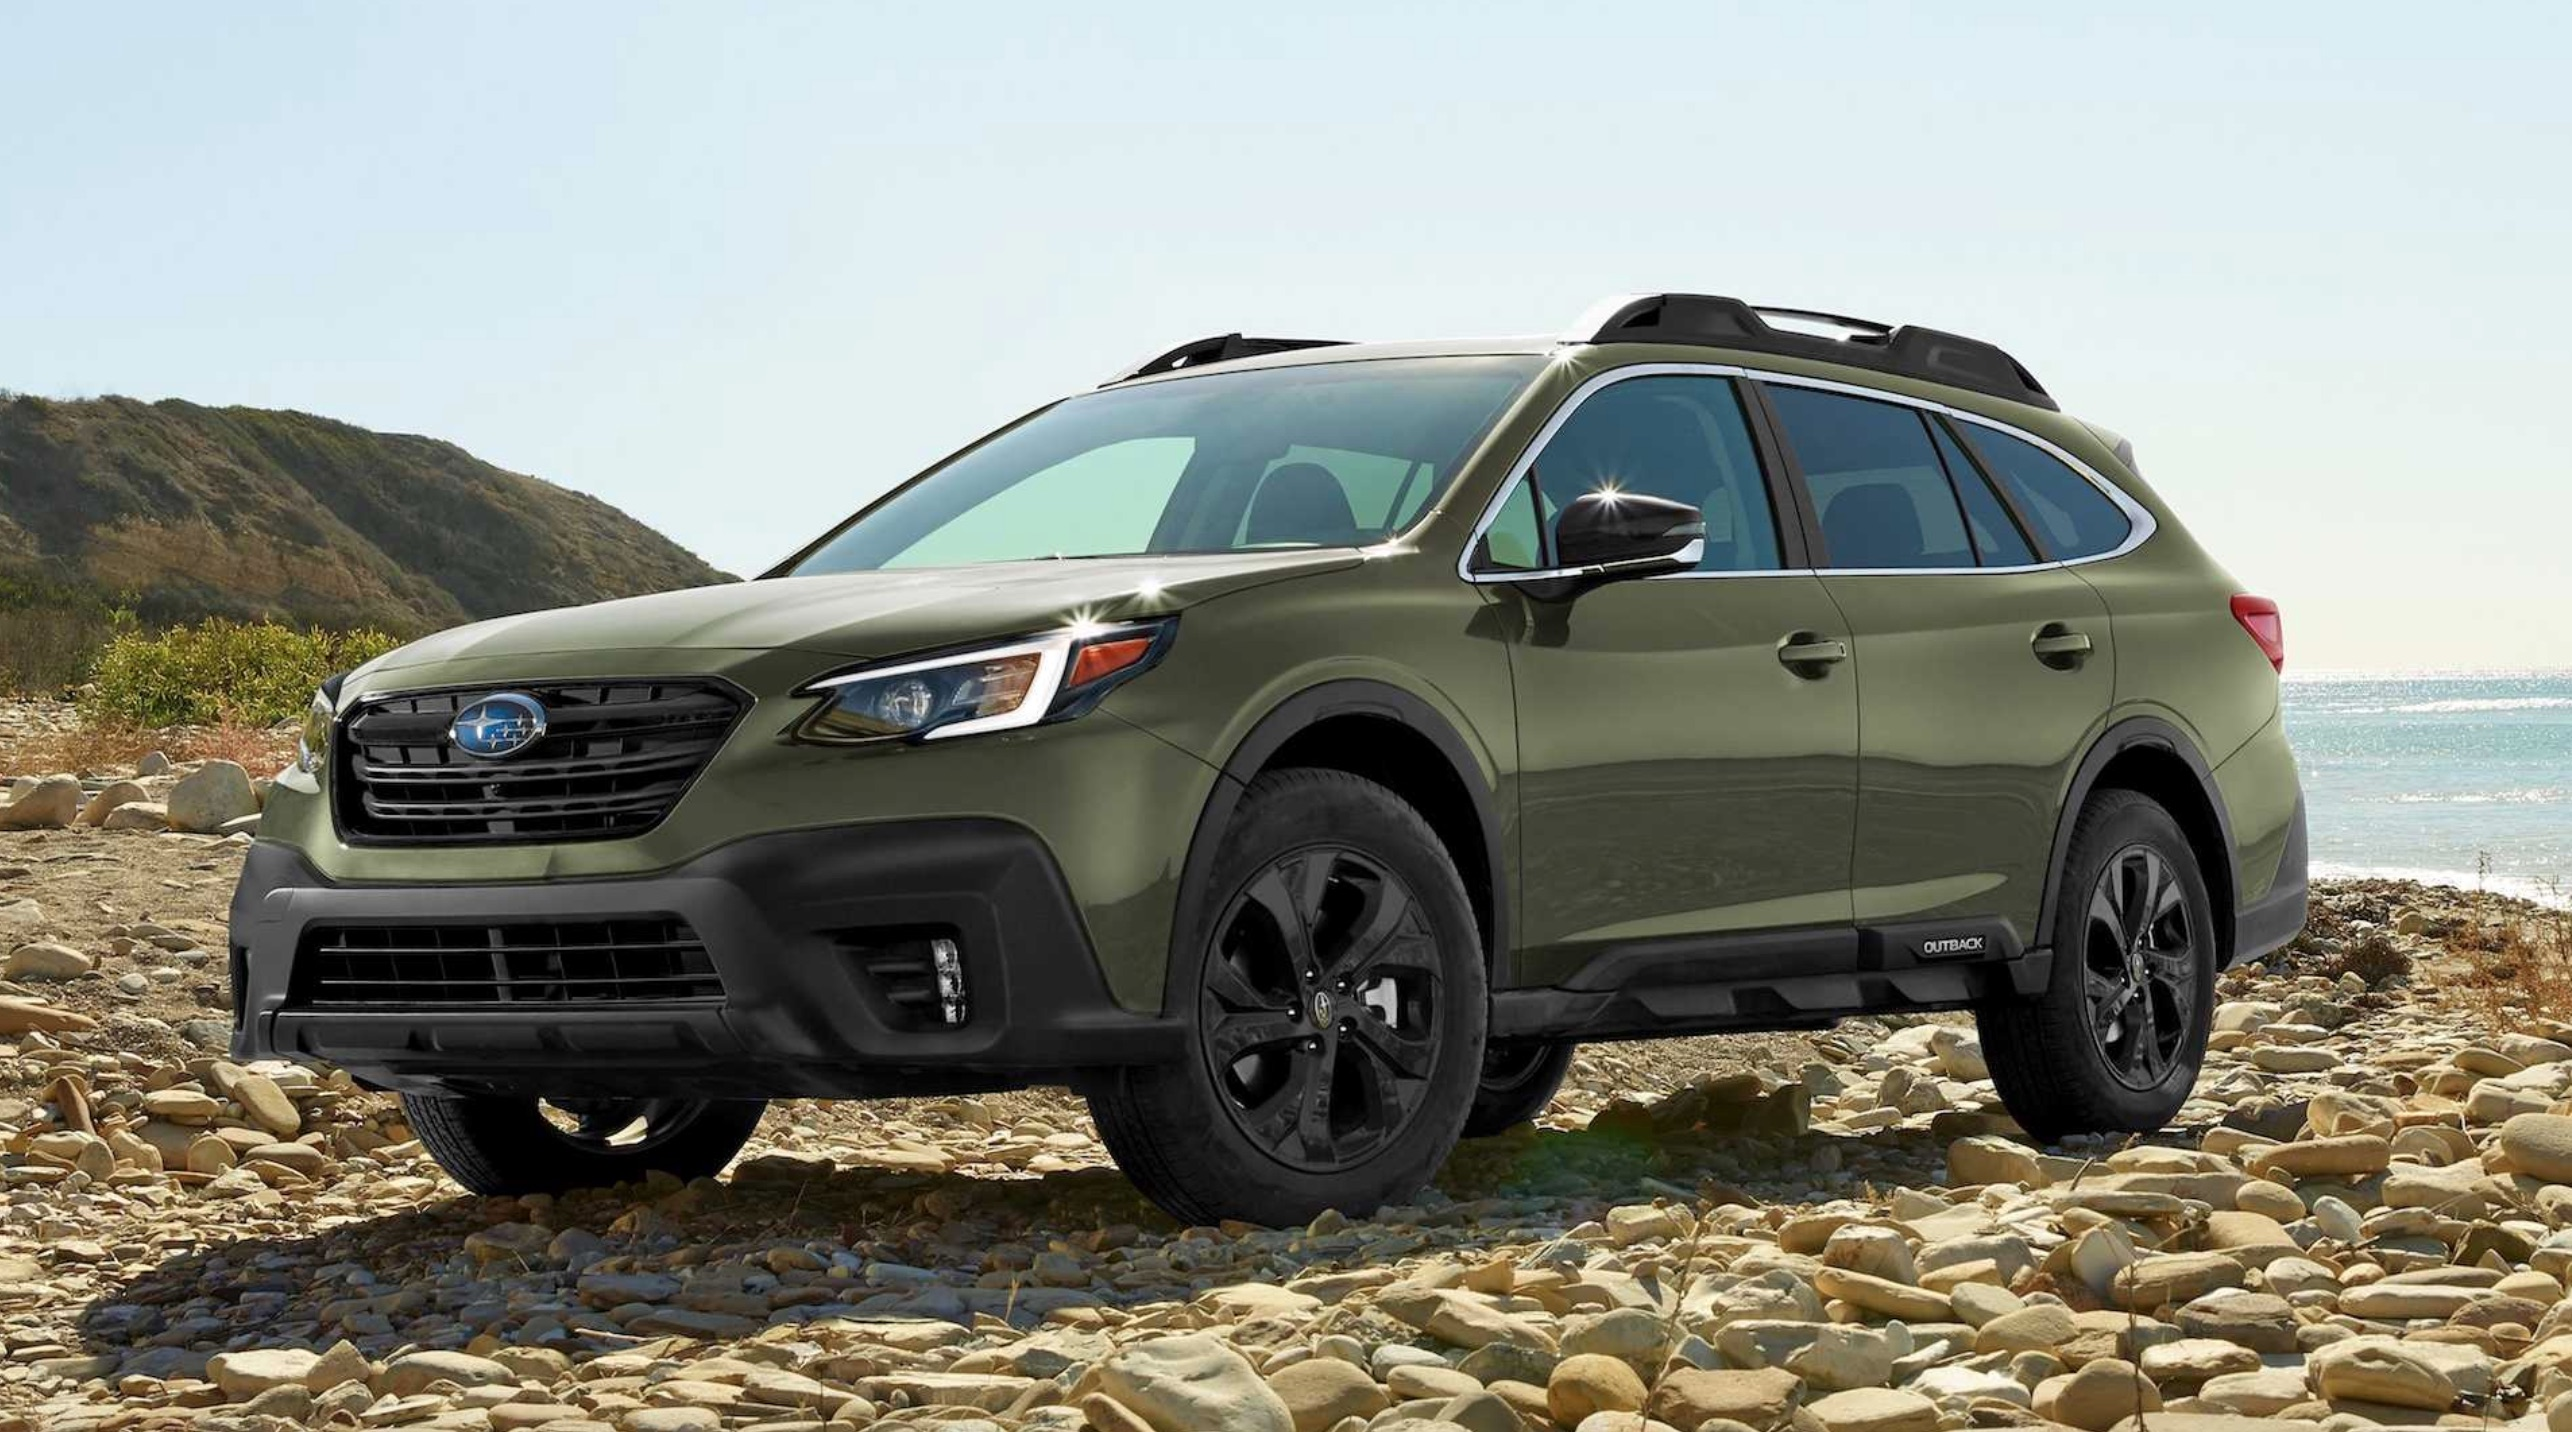 2020 subaru outback offers more powerful engines and new tech miami s community news 2020 subaru outback offers more